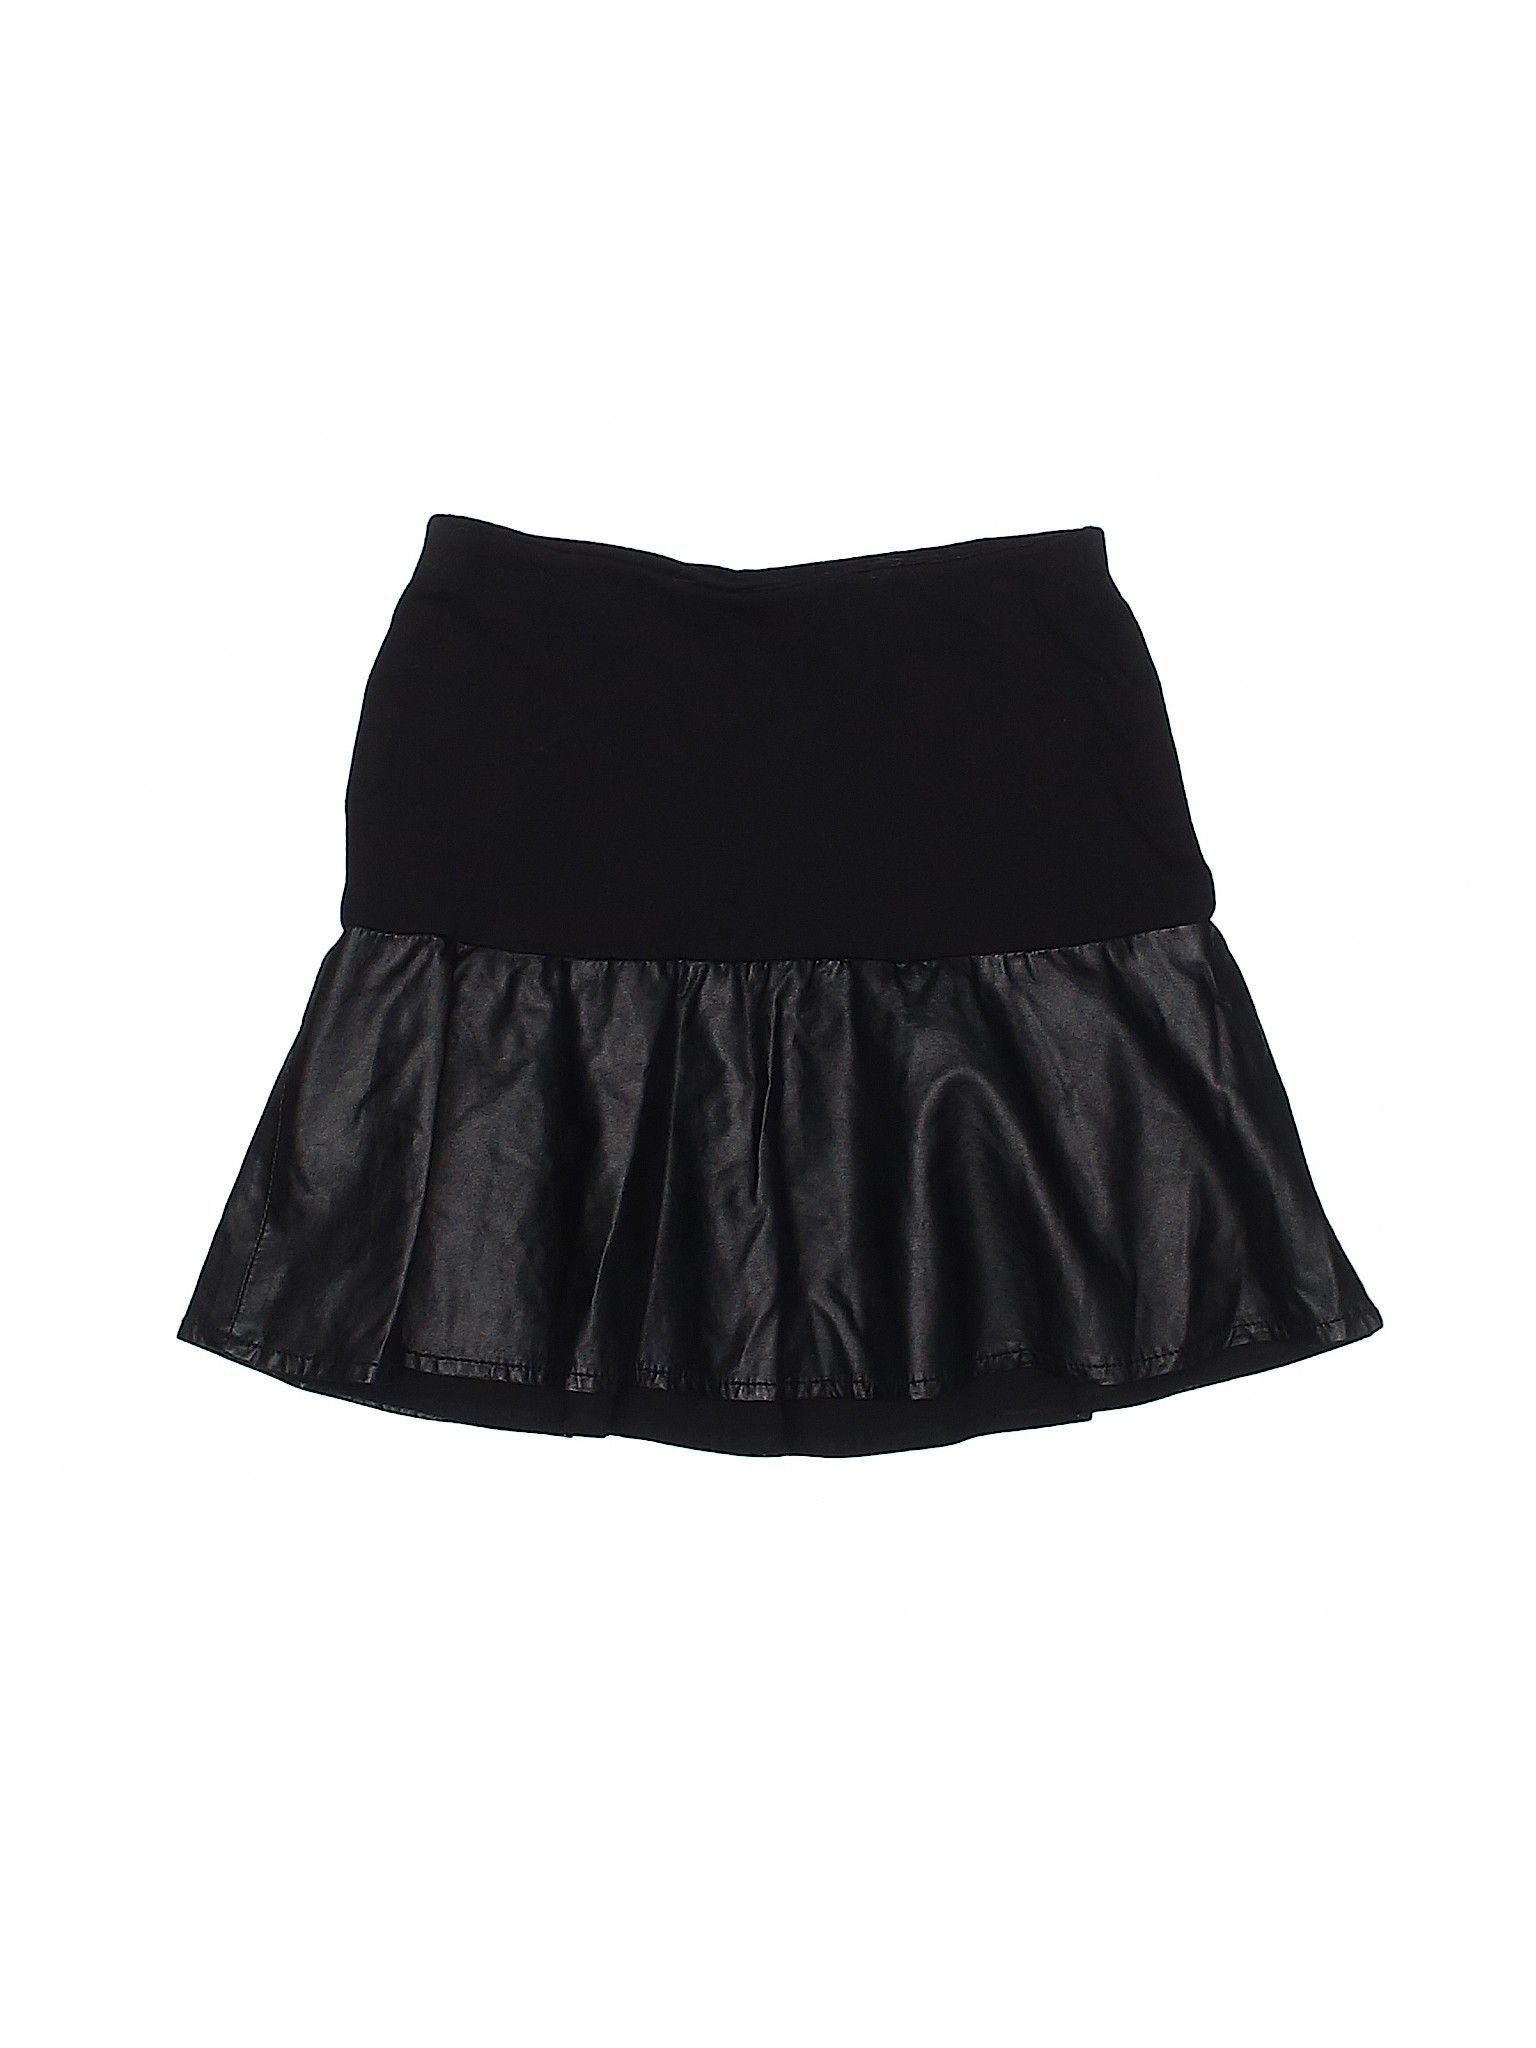 Sally Miller Skirt: Black Girl's Skirts & Dresses - Size 8 #sallymiller Sally Miller Skirt: Black Girl's Skirts & Dresses - Size 8 #sallymiller